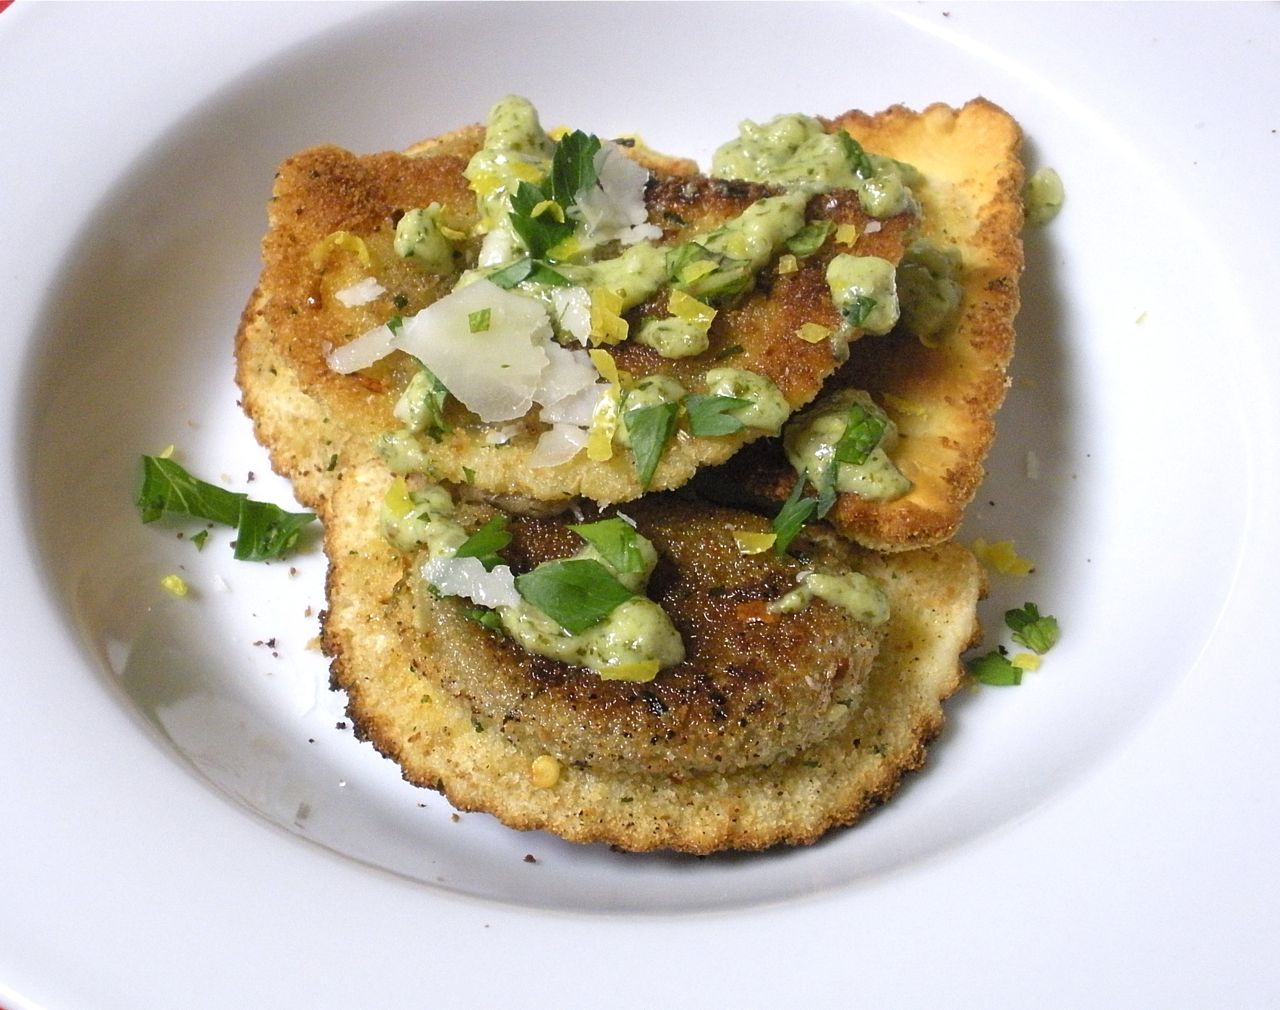 Fried Ravioli with Mint Parsley Pesto